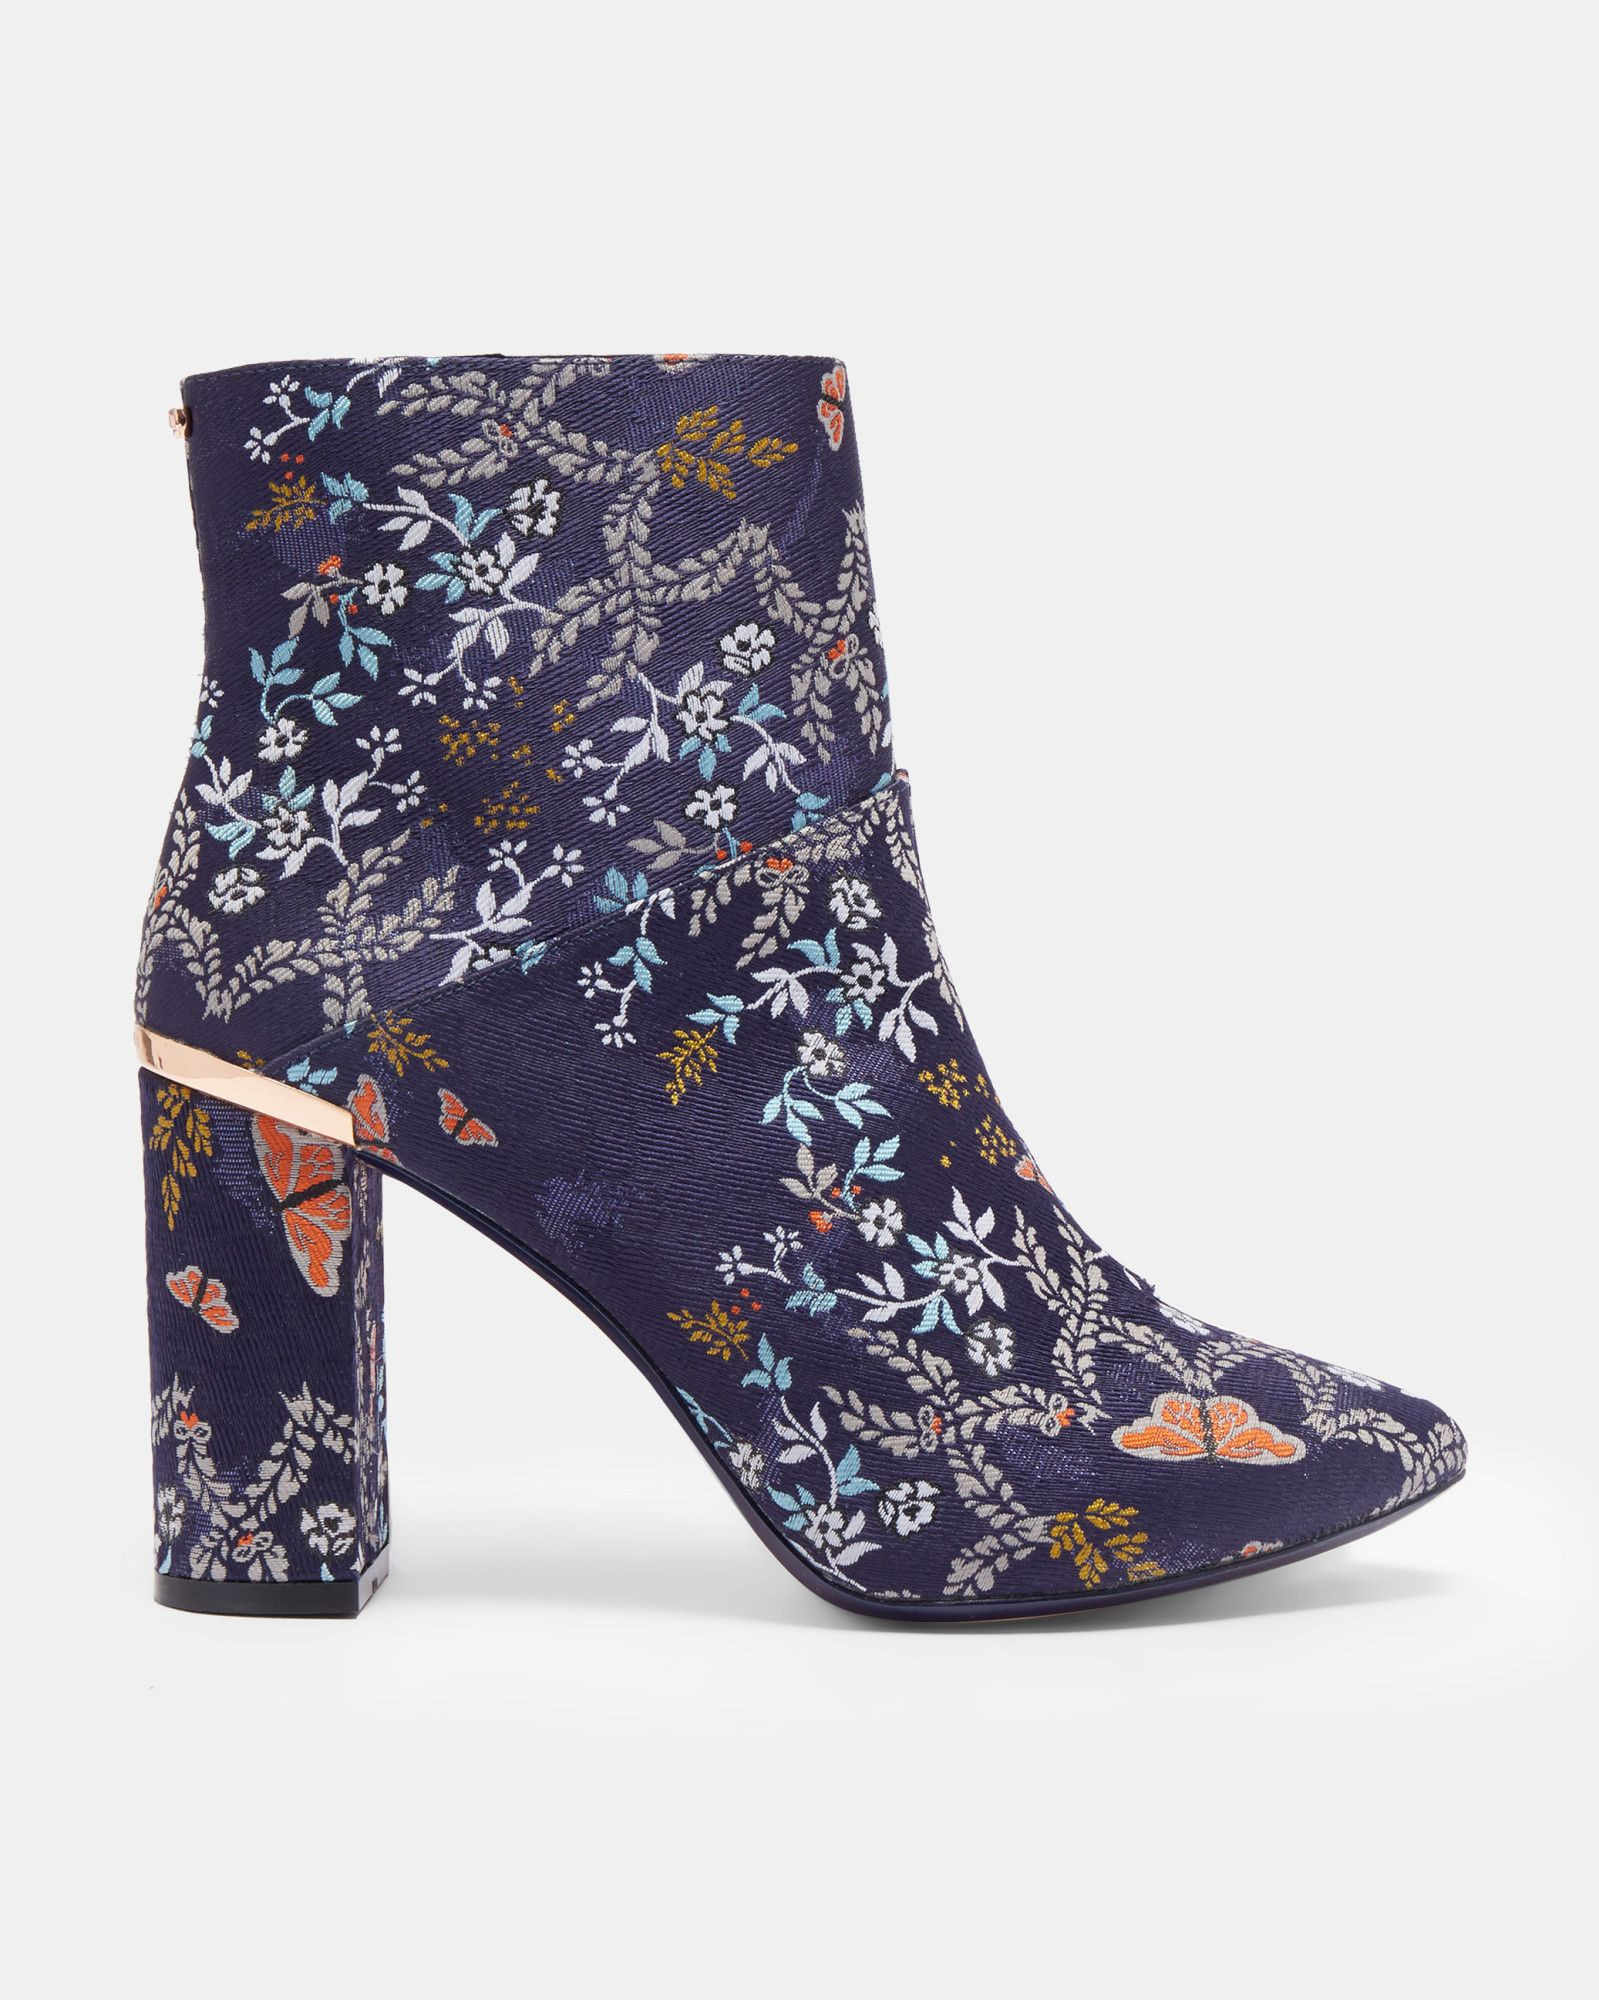 64c58fa15a7 ISHBEL Kyoto Gardens heeled ankle boots #TedToToe | All The Things ...